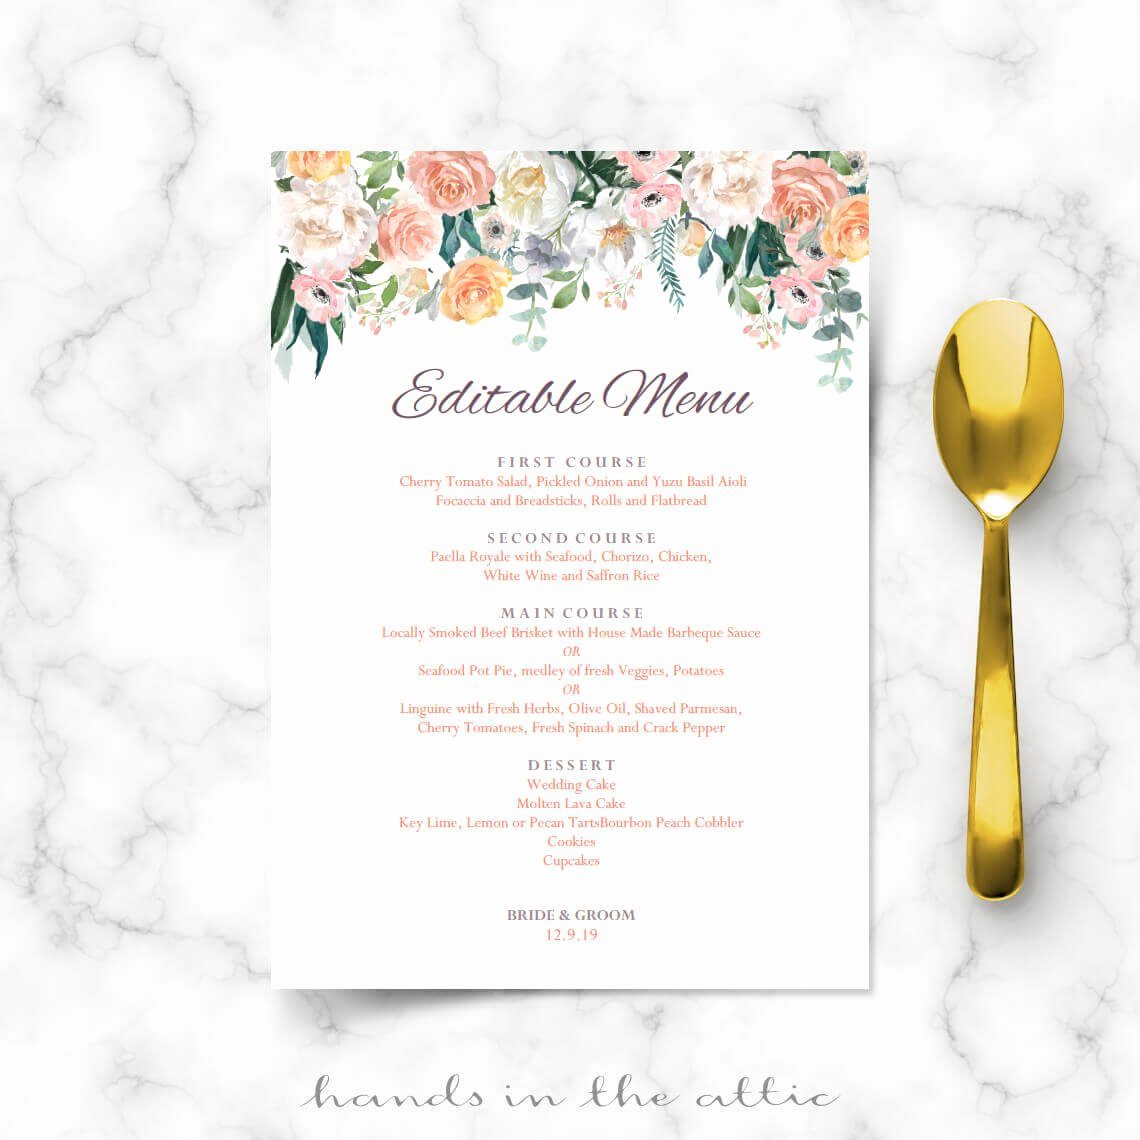 Bridal Shower Menu Template Best Of Secret Garden Vintage Flowers Menu Template